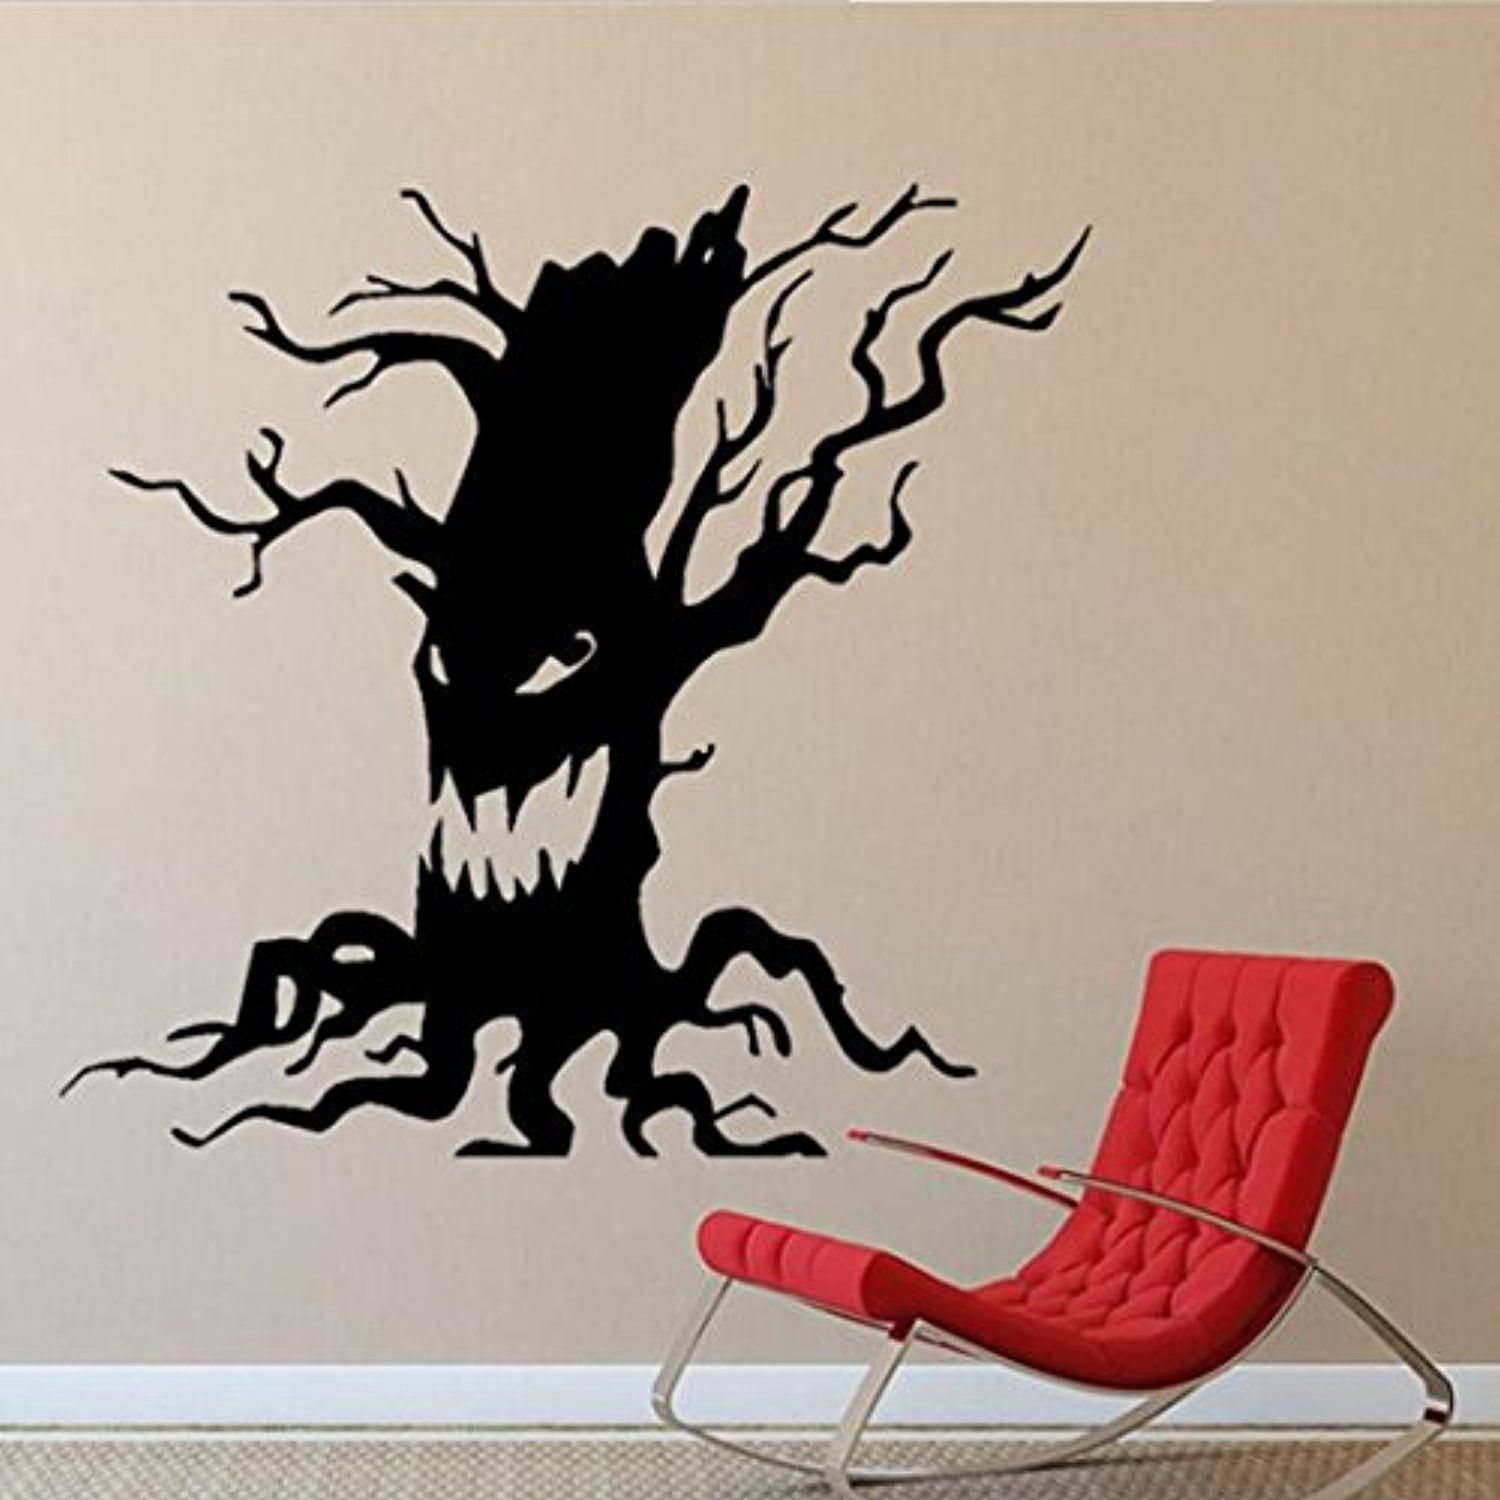 Gotd Wall Sticker Vintage Happy Halloween Room Floor Sticker Mural Decor Decal Removable Halloween Decorations Black B Details Can Be Found By Clicking